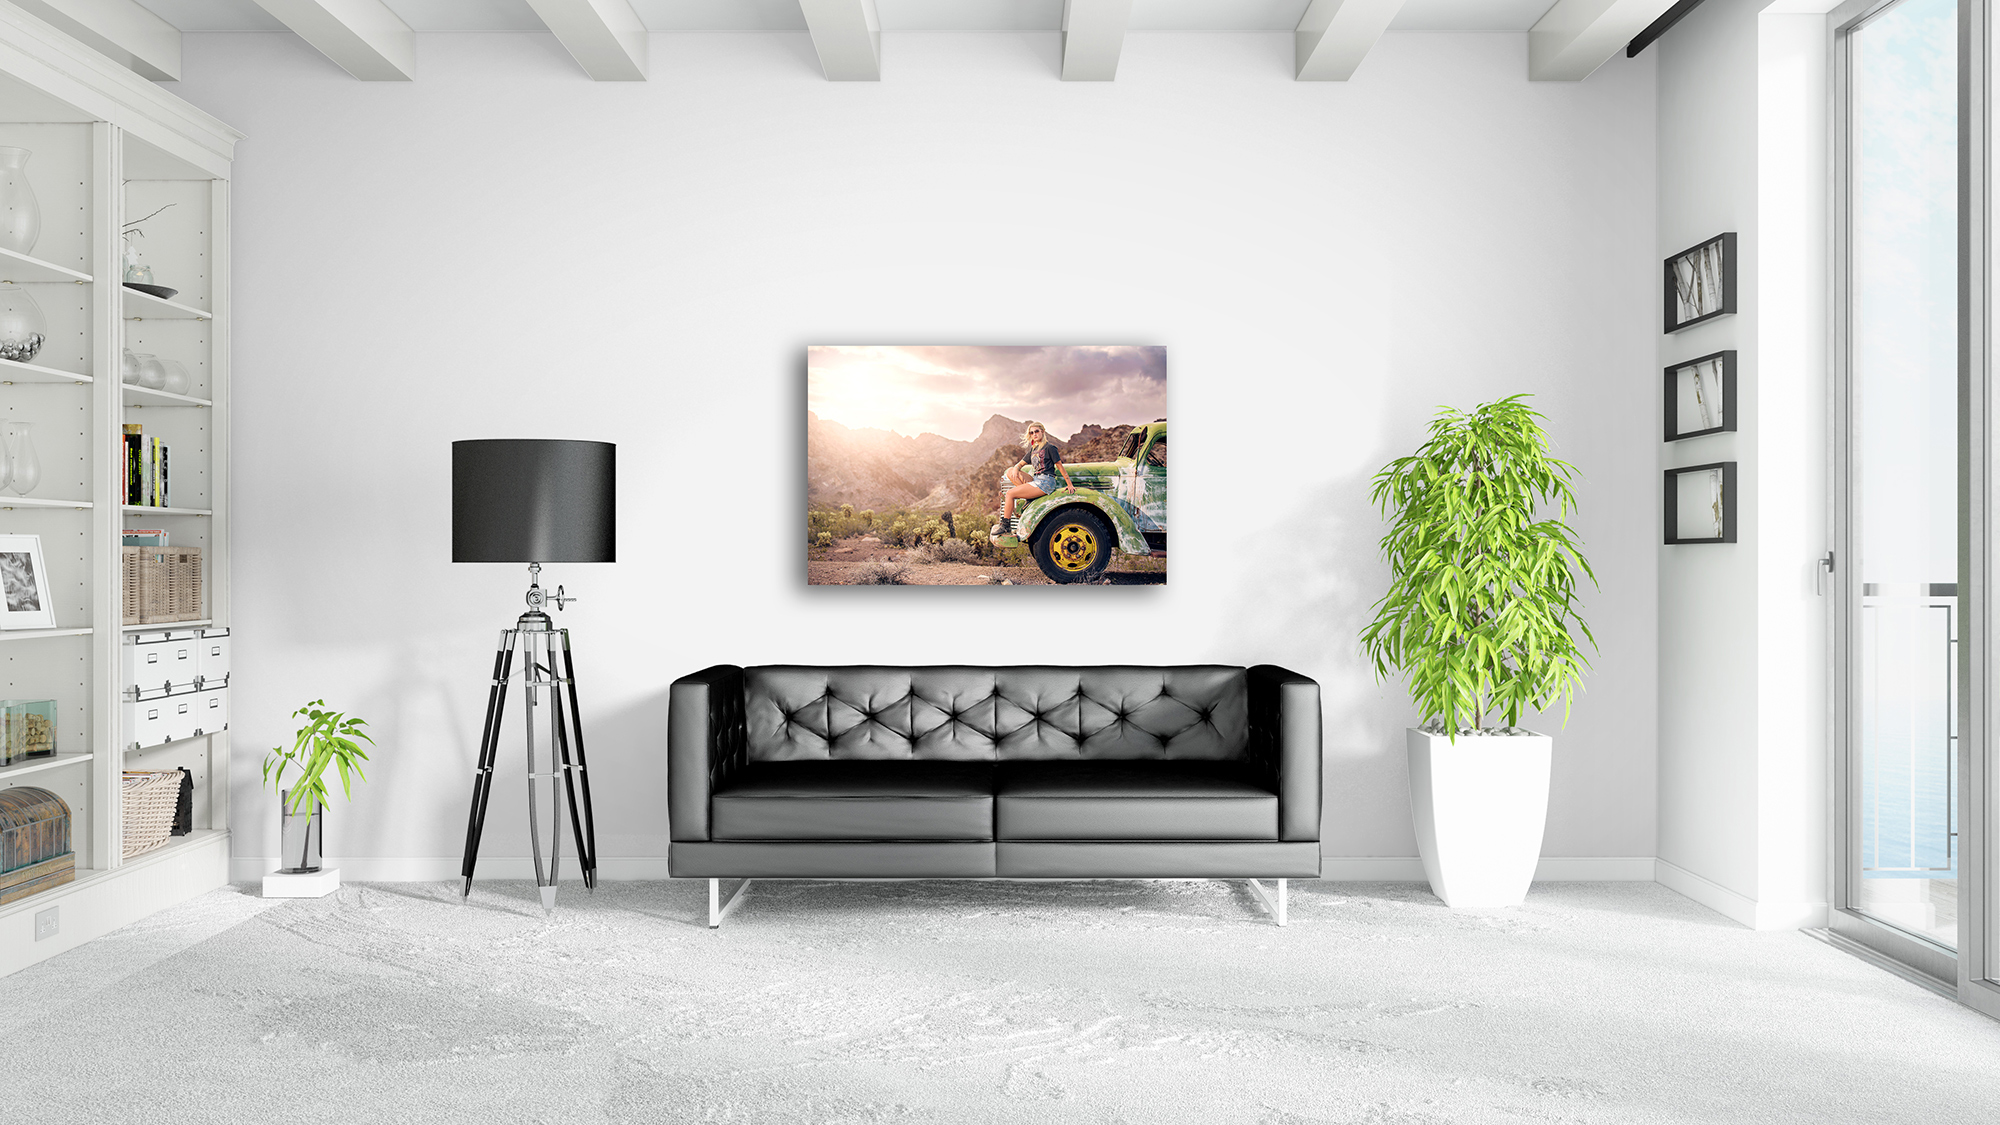 Products---wall-art.jpg